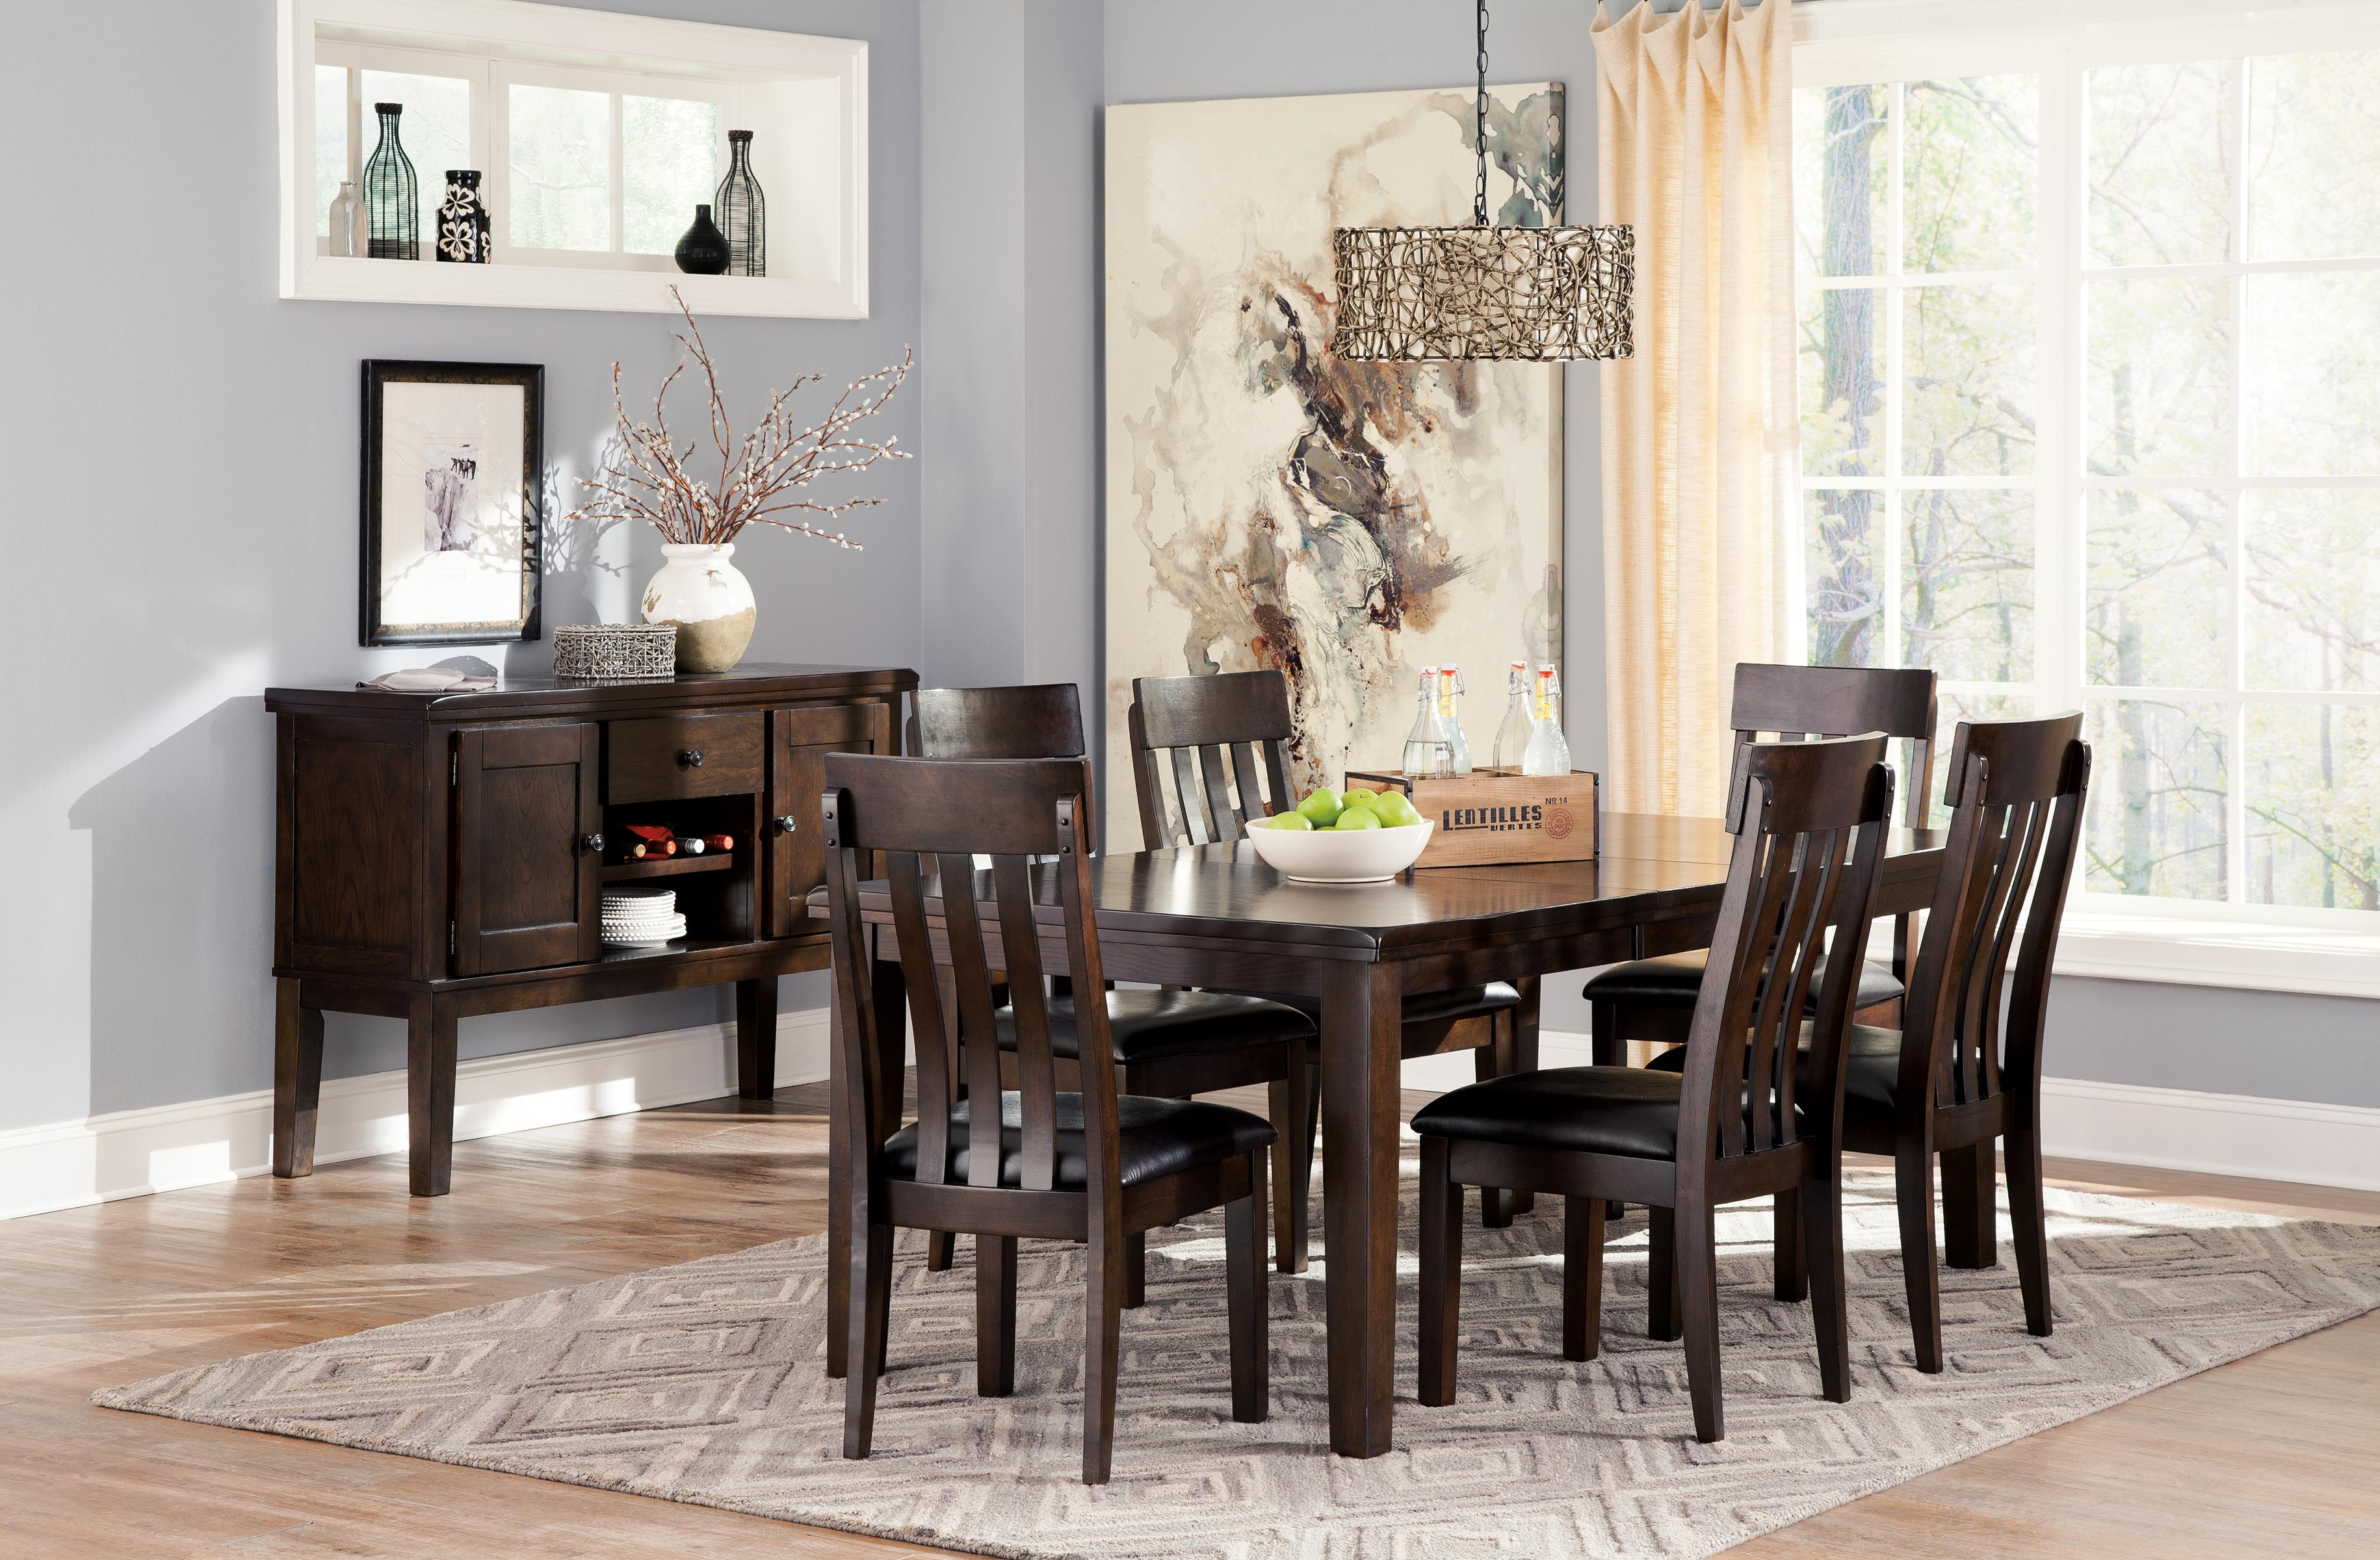 Haddigan Formal Dining Room Group by Signature Design by Ashley at VanDrie Home Furnishings